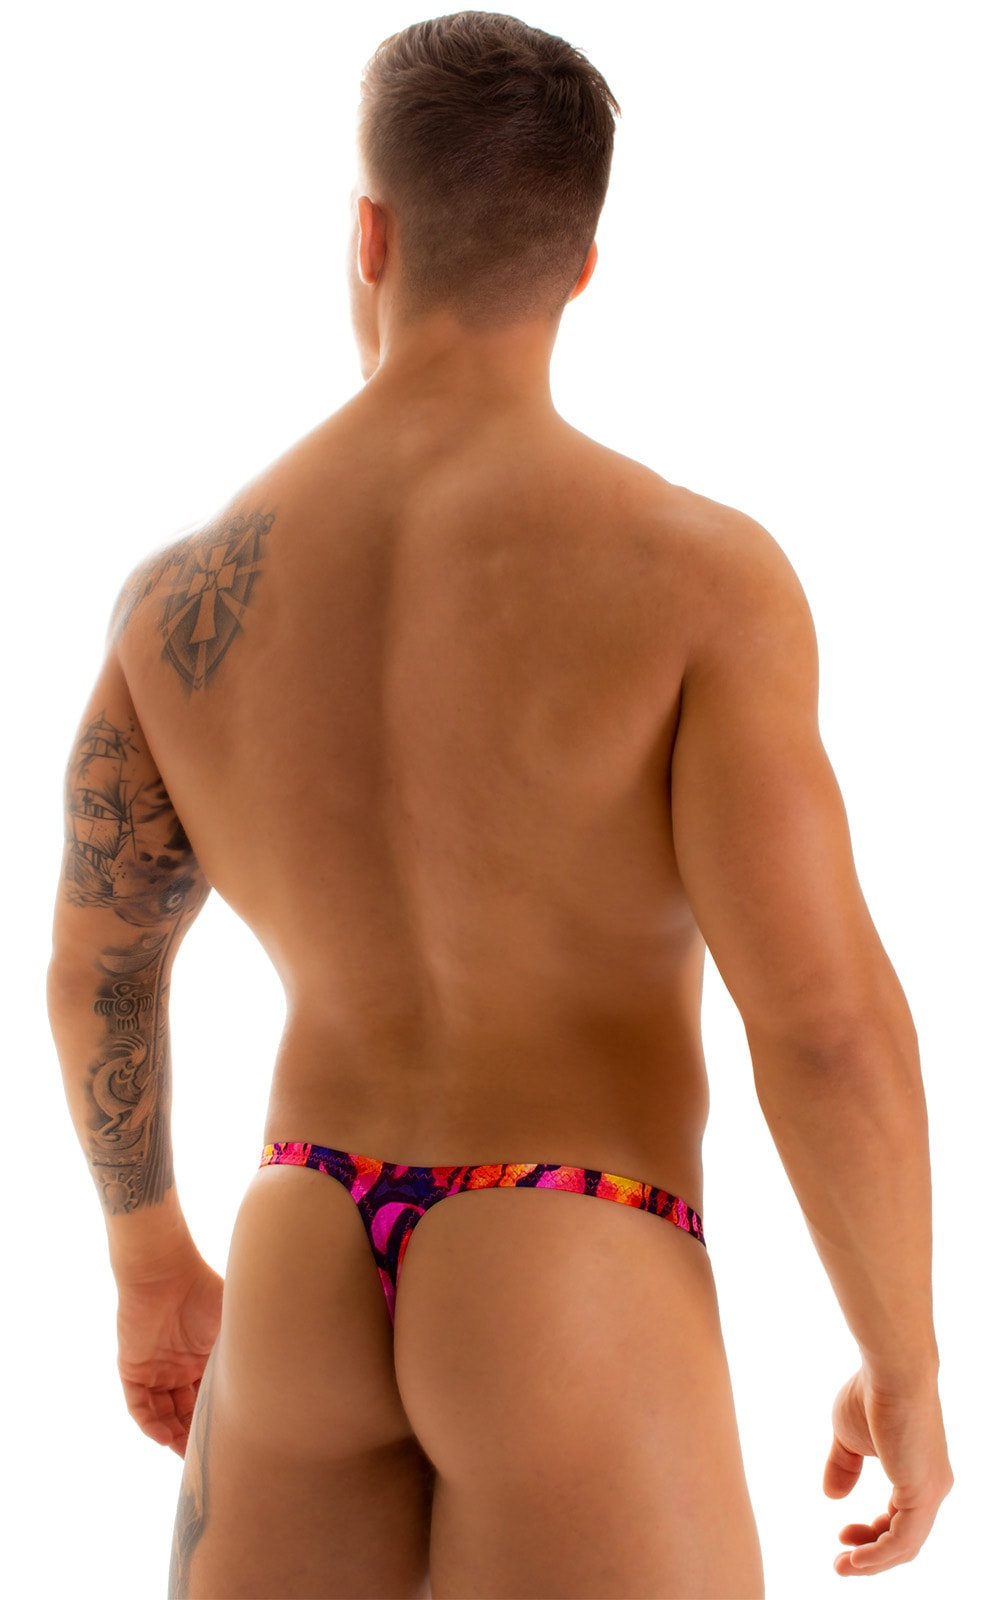 Stuffit Pouch Thong in Beach Tiger Pink 2